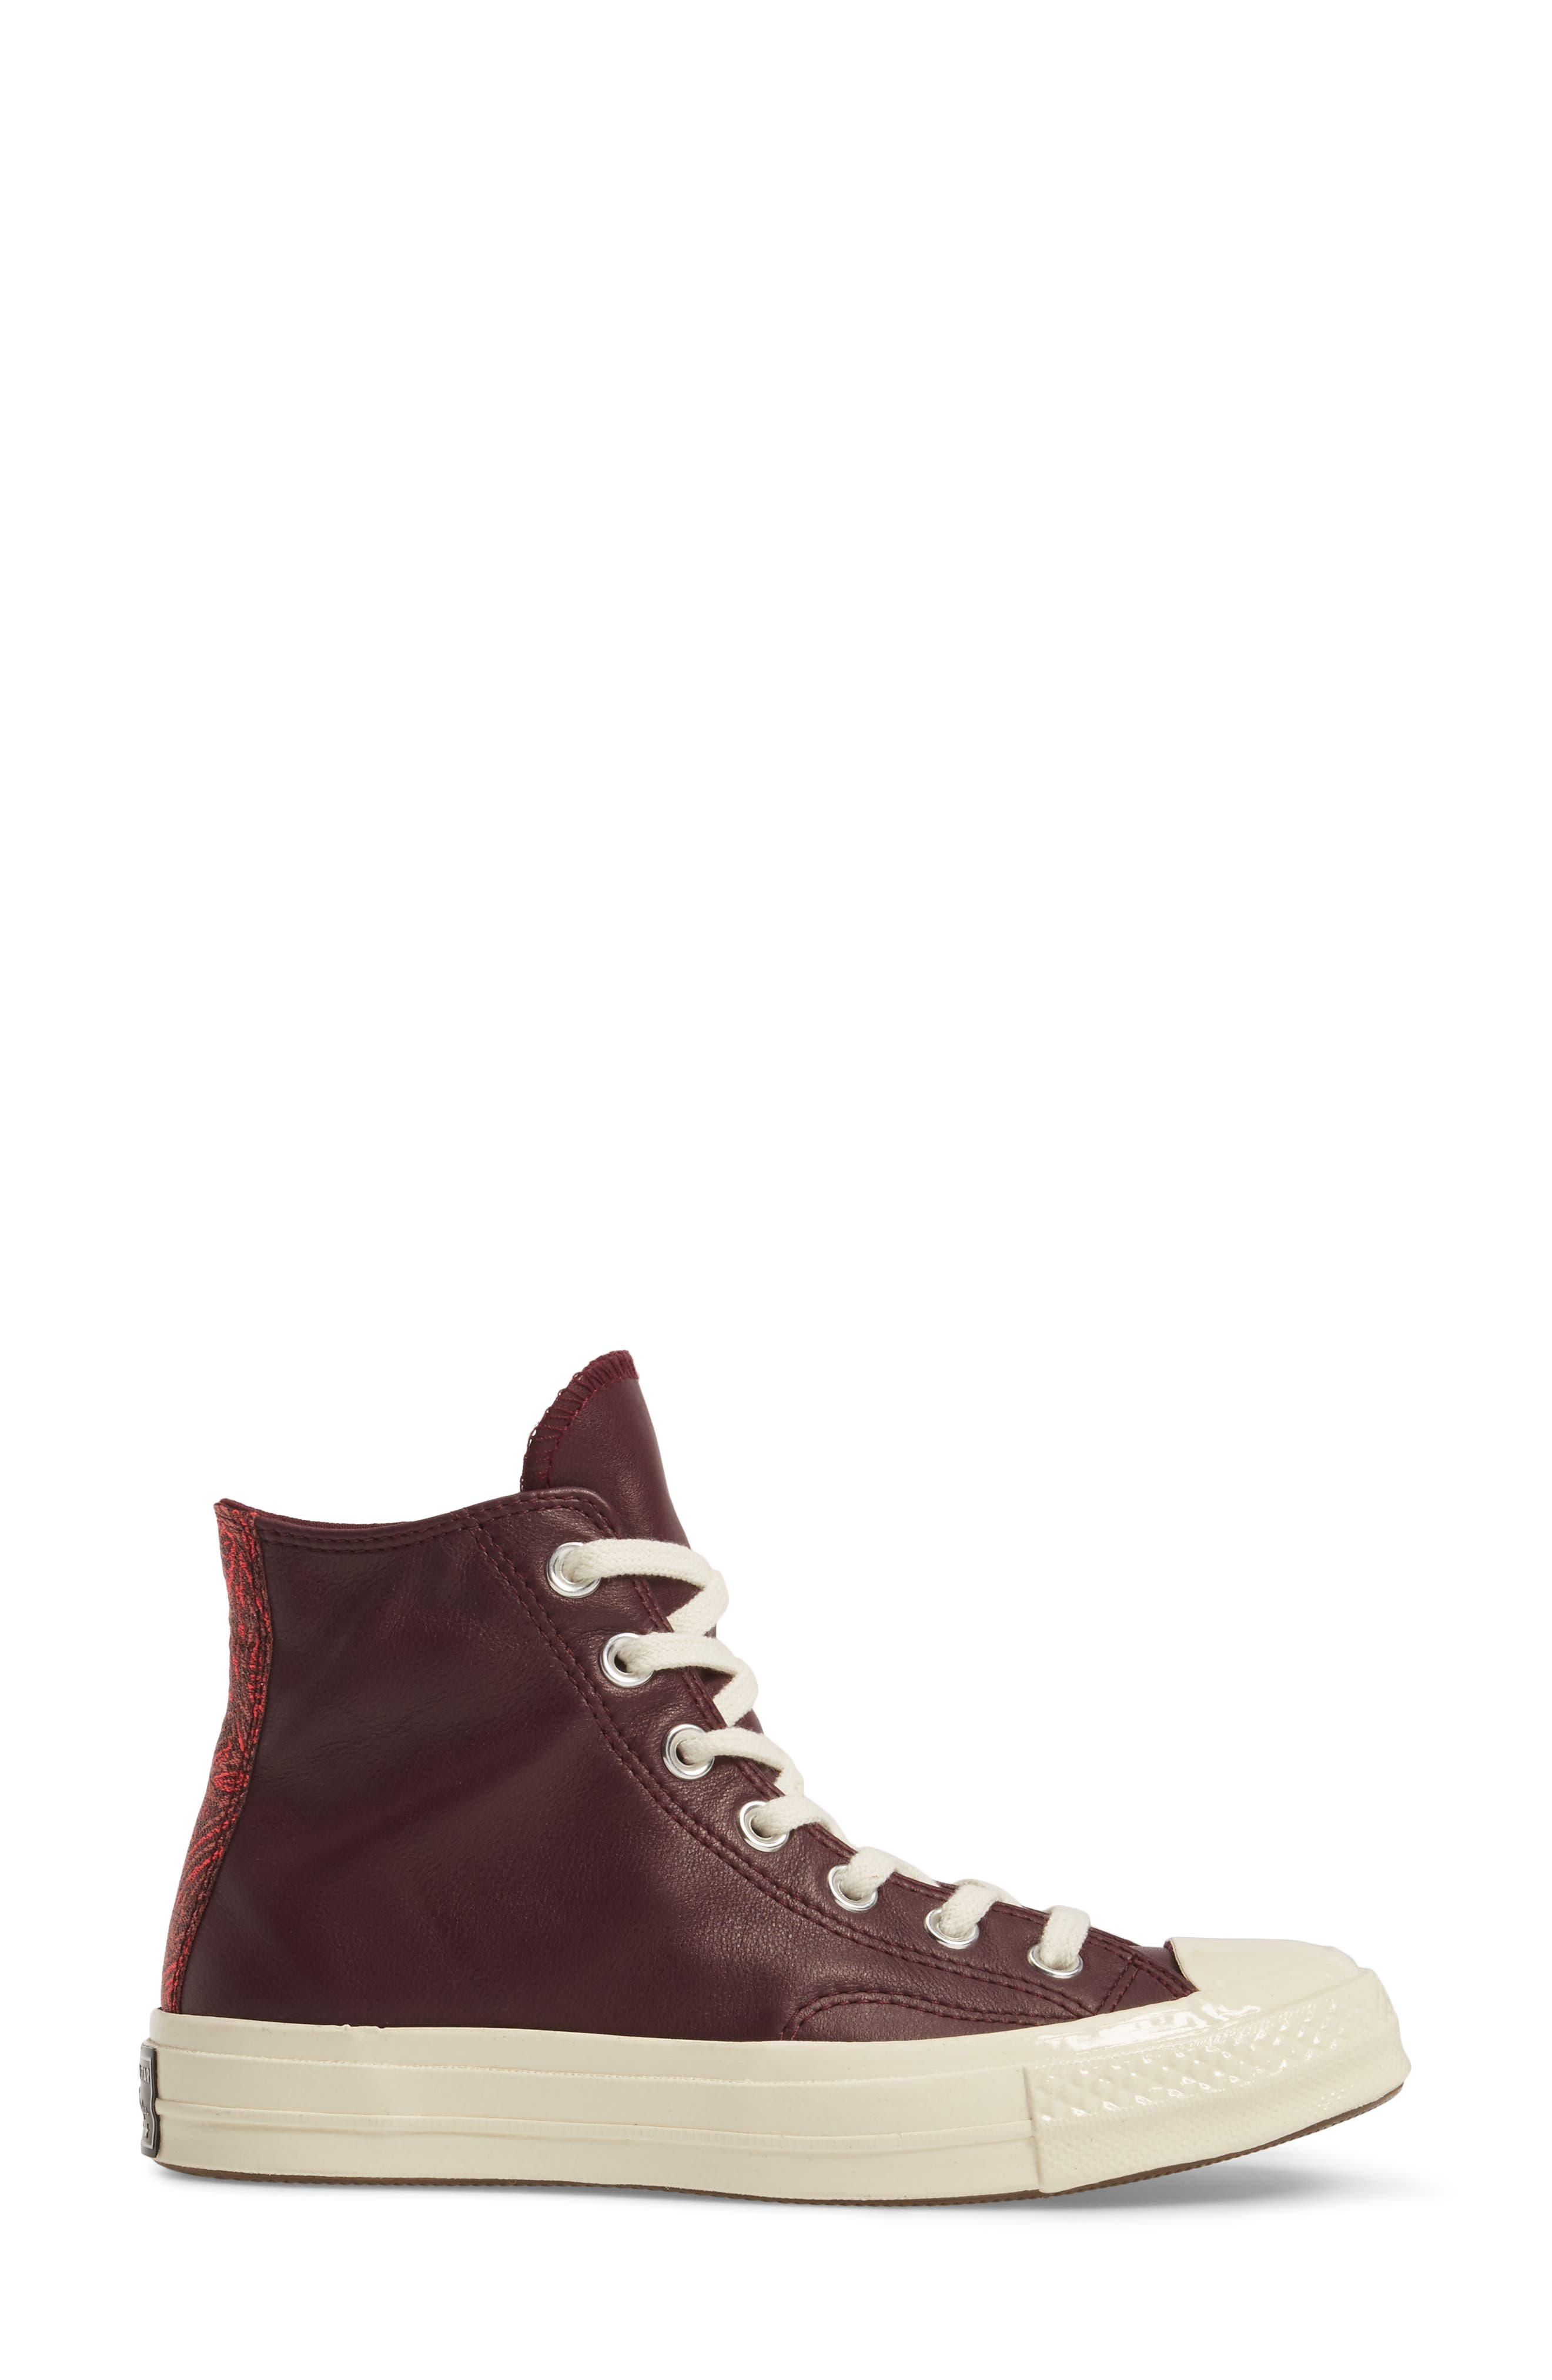 Alternate Image 3  - Converse Chuck Taylor® All Star® 70 High Top Sneaker (Women)